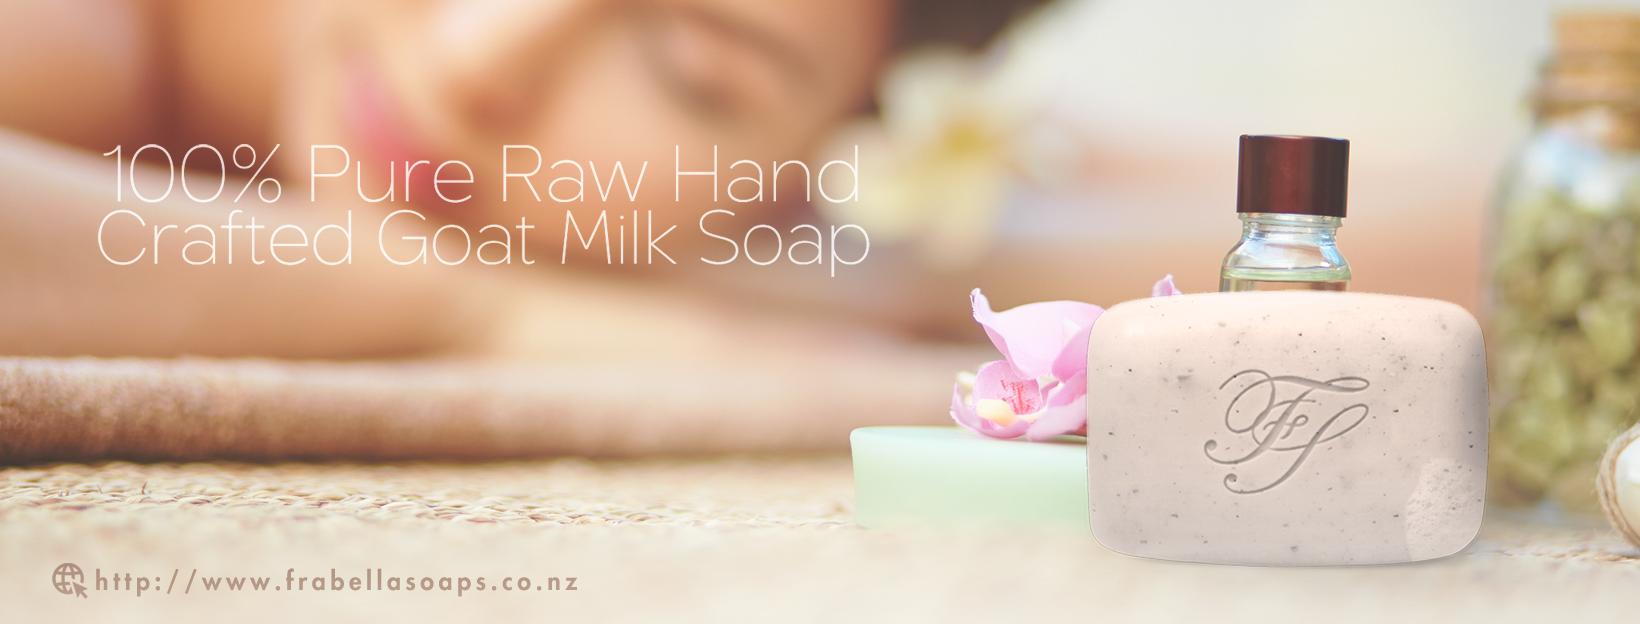 New Zealand Goats Milk Soap for high end luxury product market